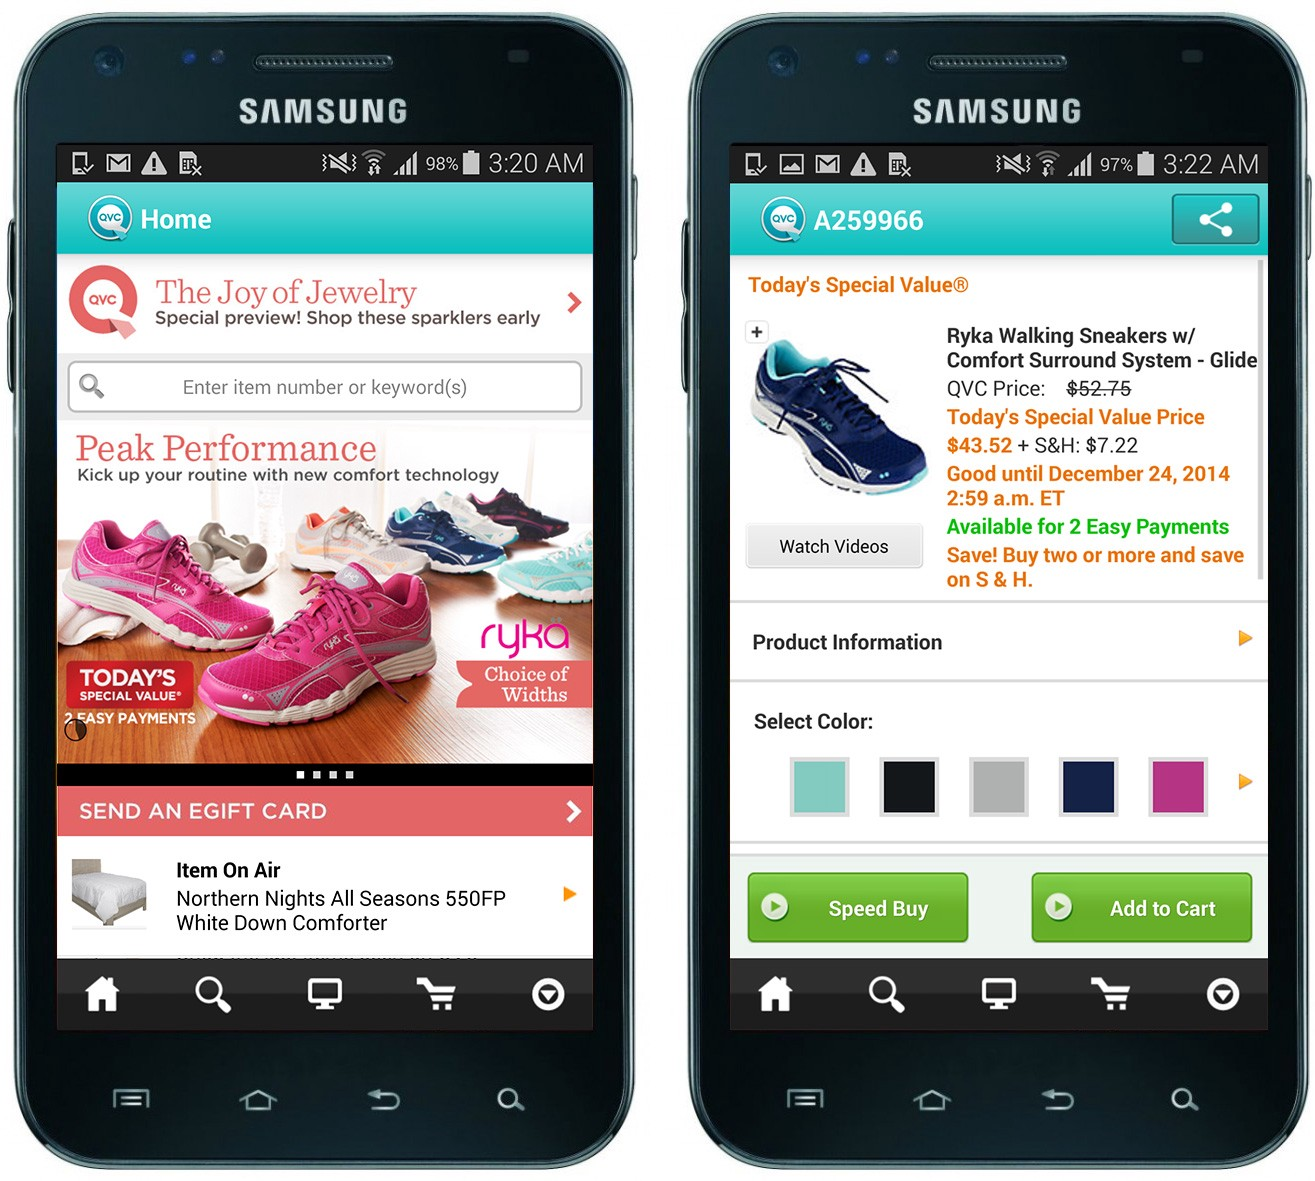 Original Android App Home Screen And Product Detail Page